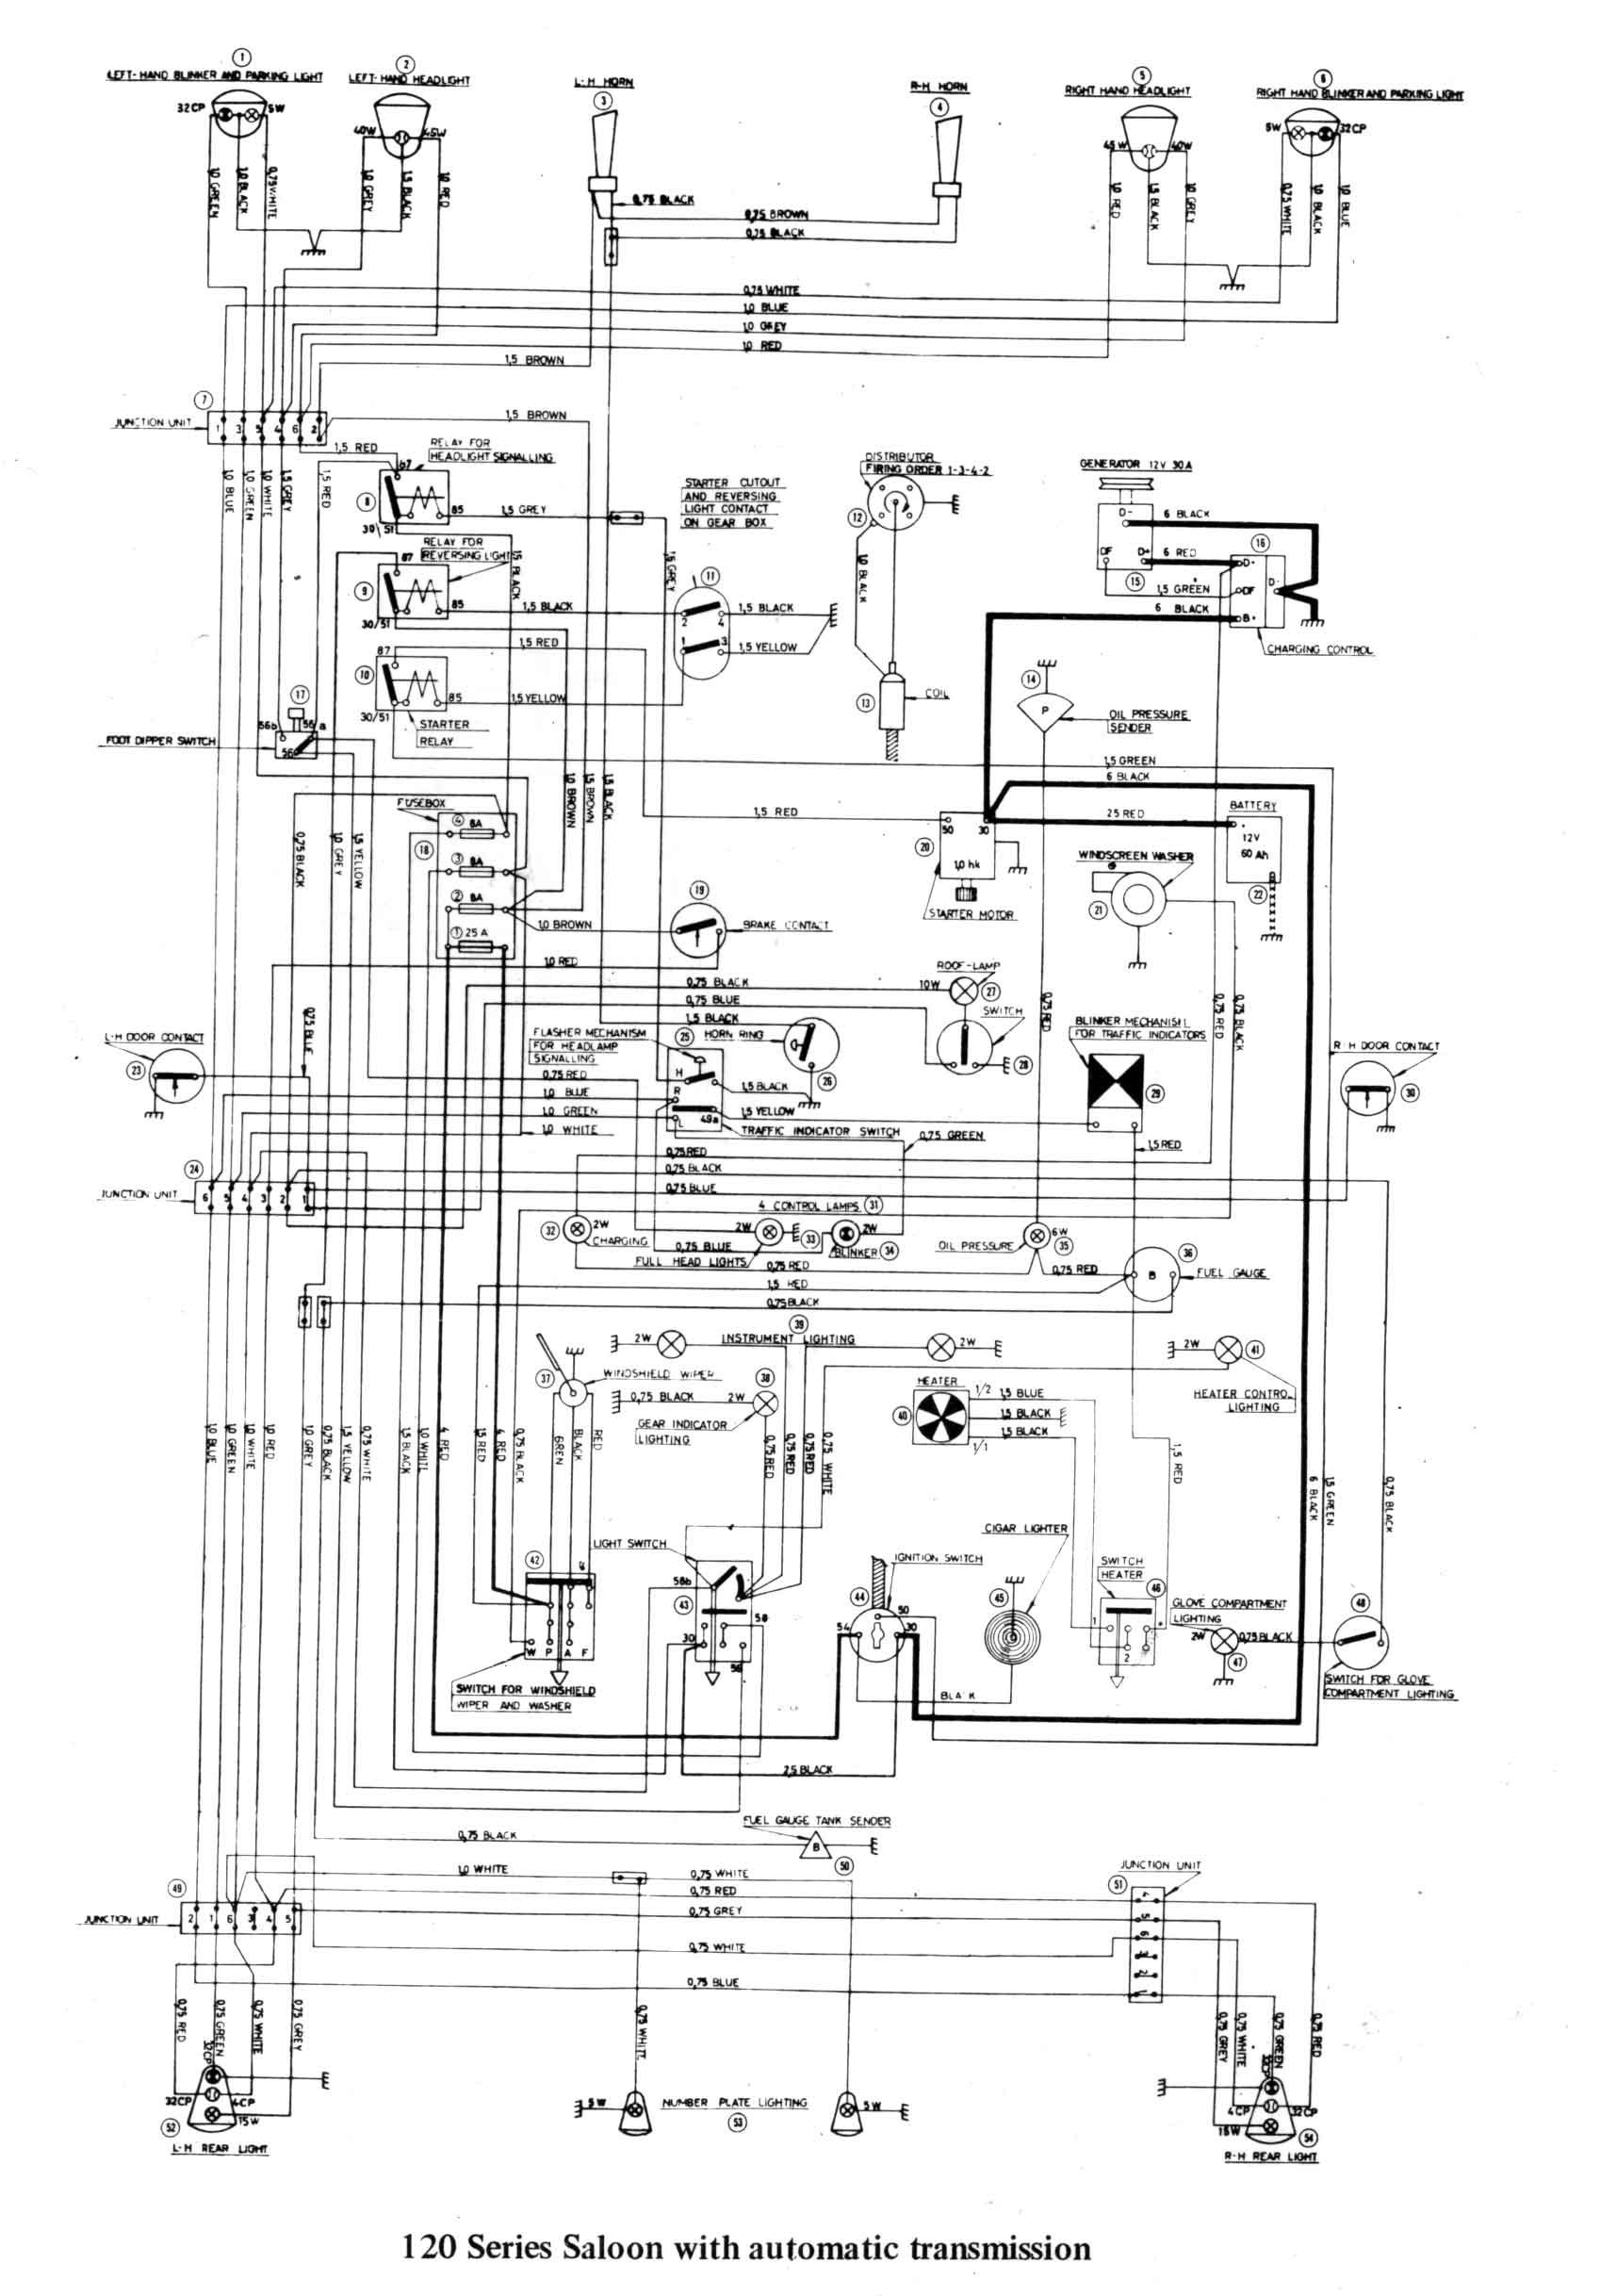 Bus Air Brake System Diagram Volvo Brake Schematics Wire Center • Of Bus Air Brake System Diagram Brakes System Diagram – Diagram Braking System Brake Diagram Car